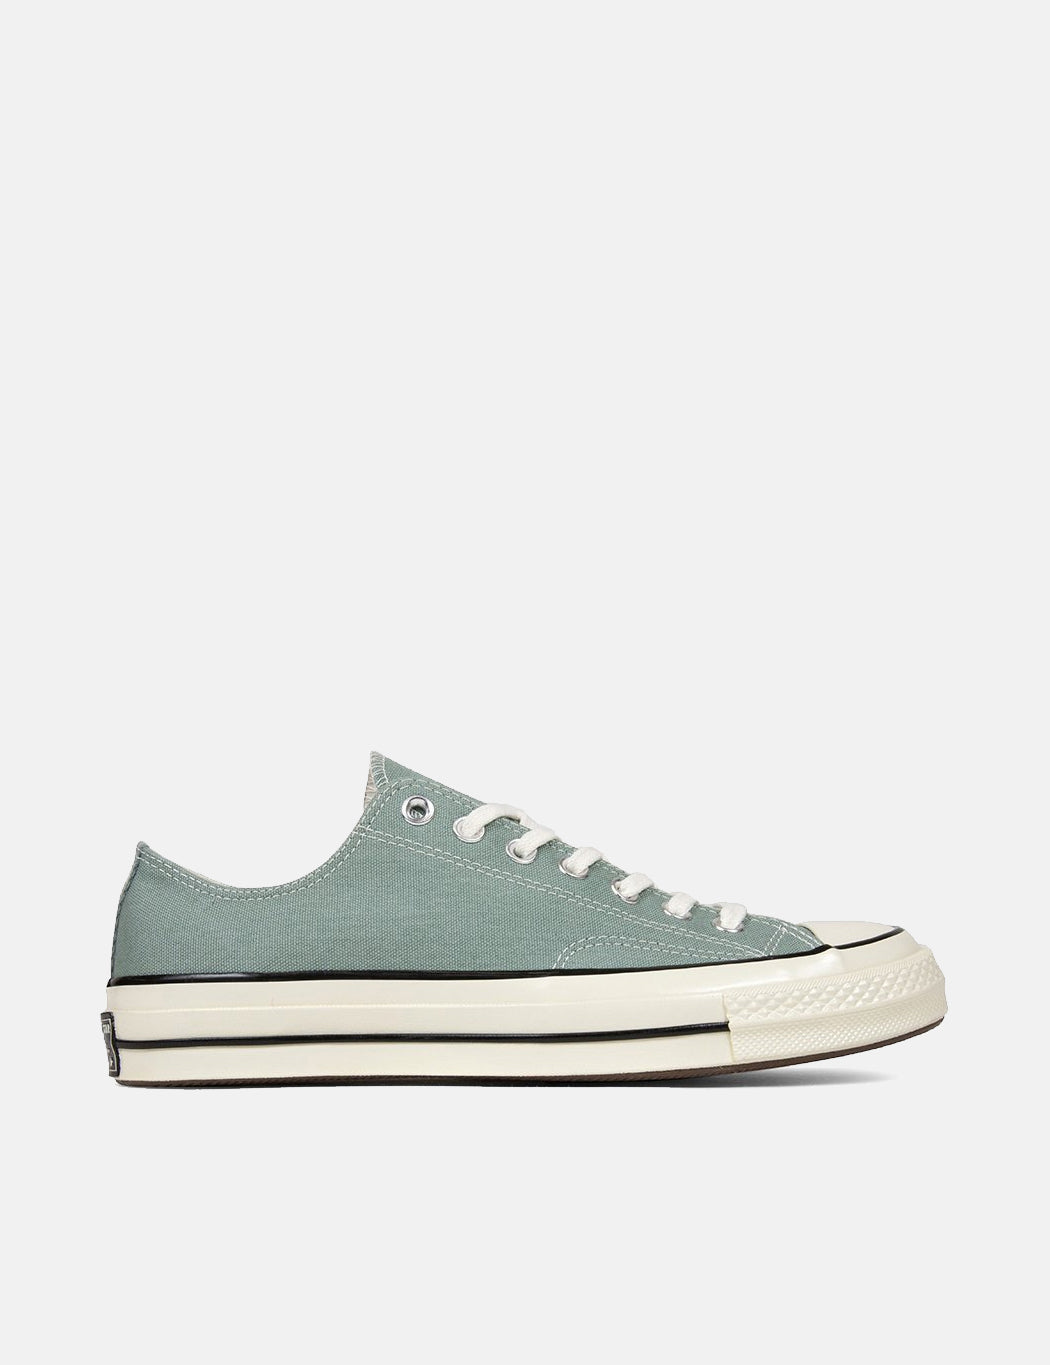 Converse 70's Chuck Low 161506C (Canvas) - Mica Green/Black/Egret